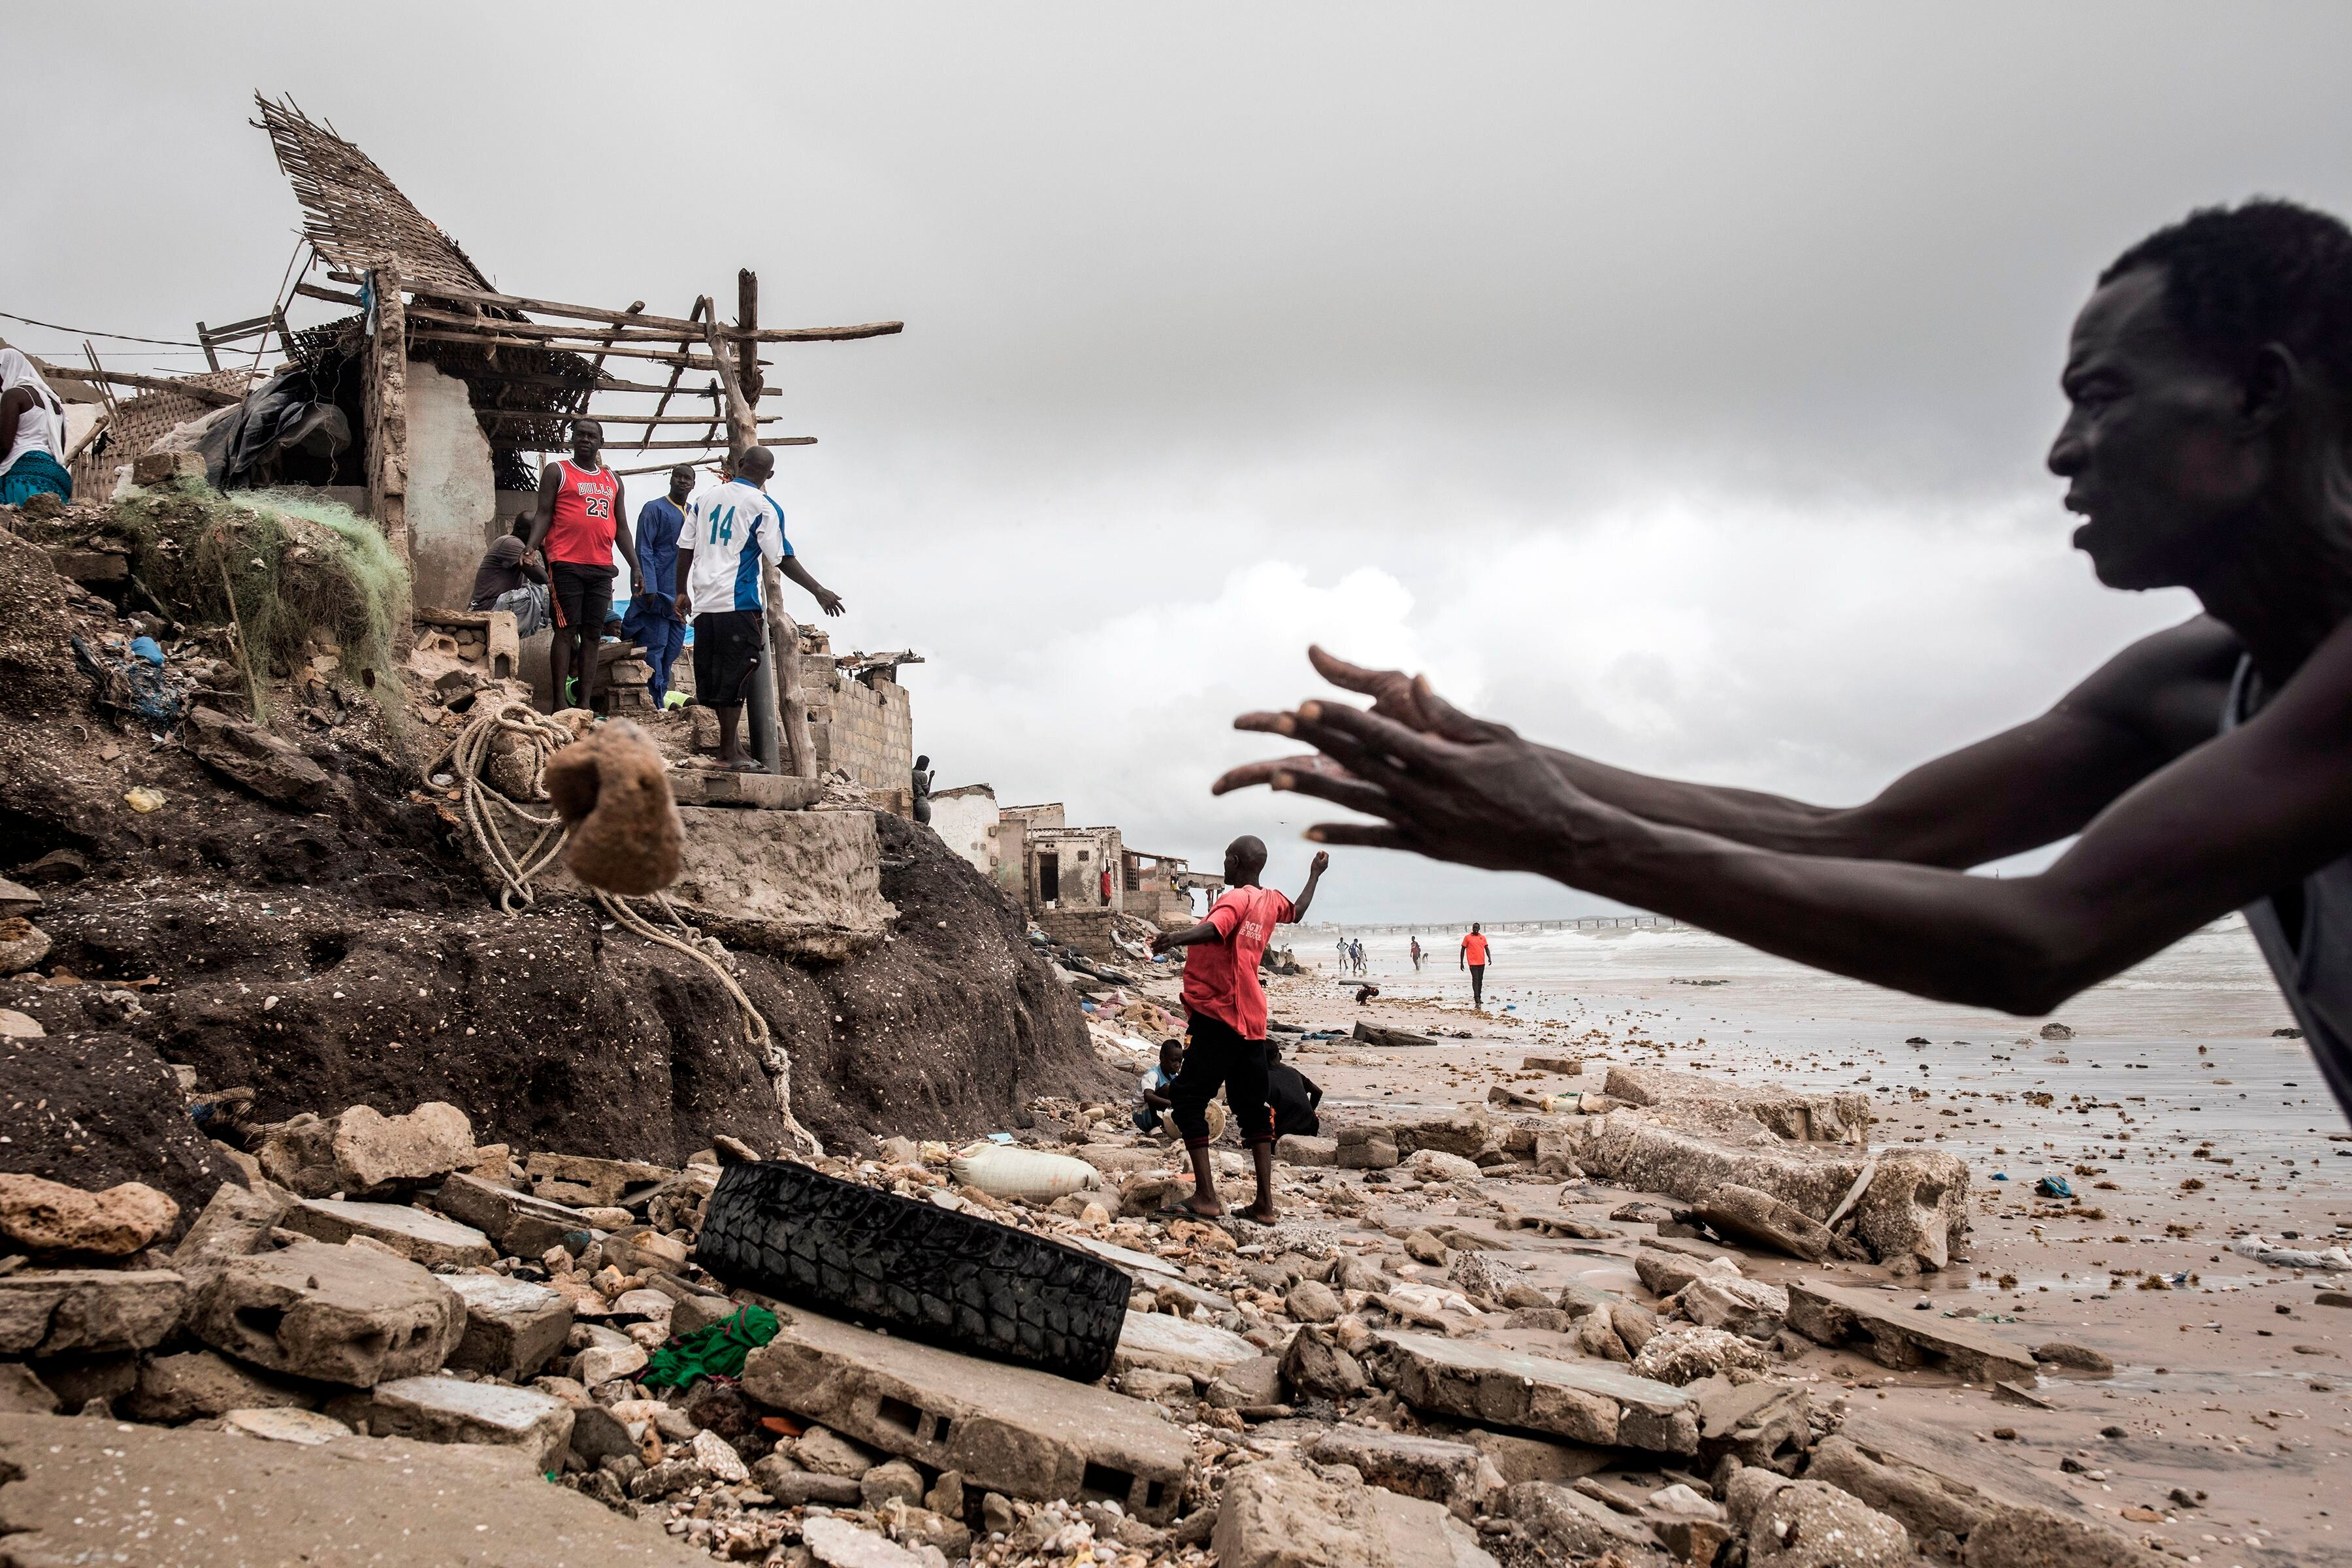 A man repairs his makeshift barrier to protect his house before the next high tide arrives in Bargny, Senegal, on Sept. 3, 20